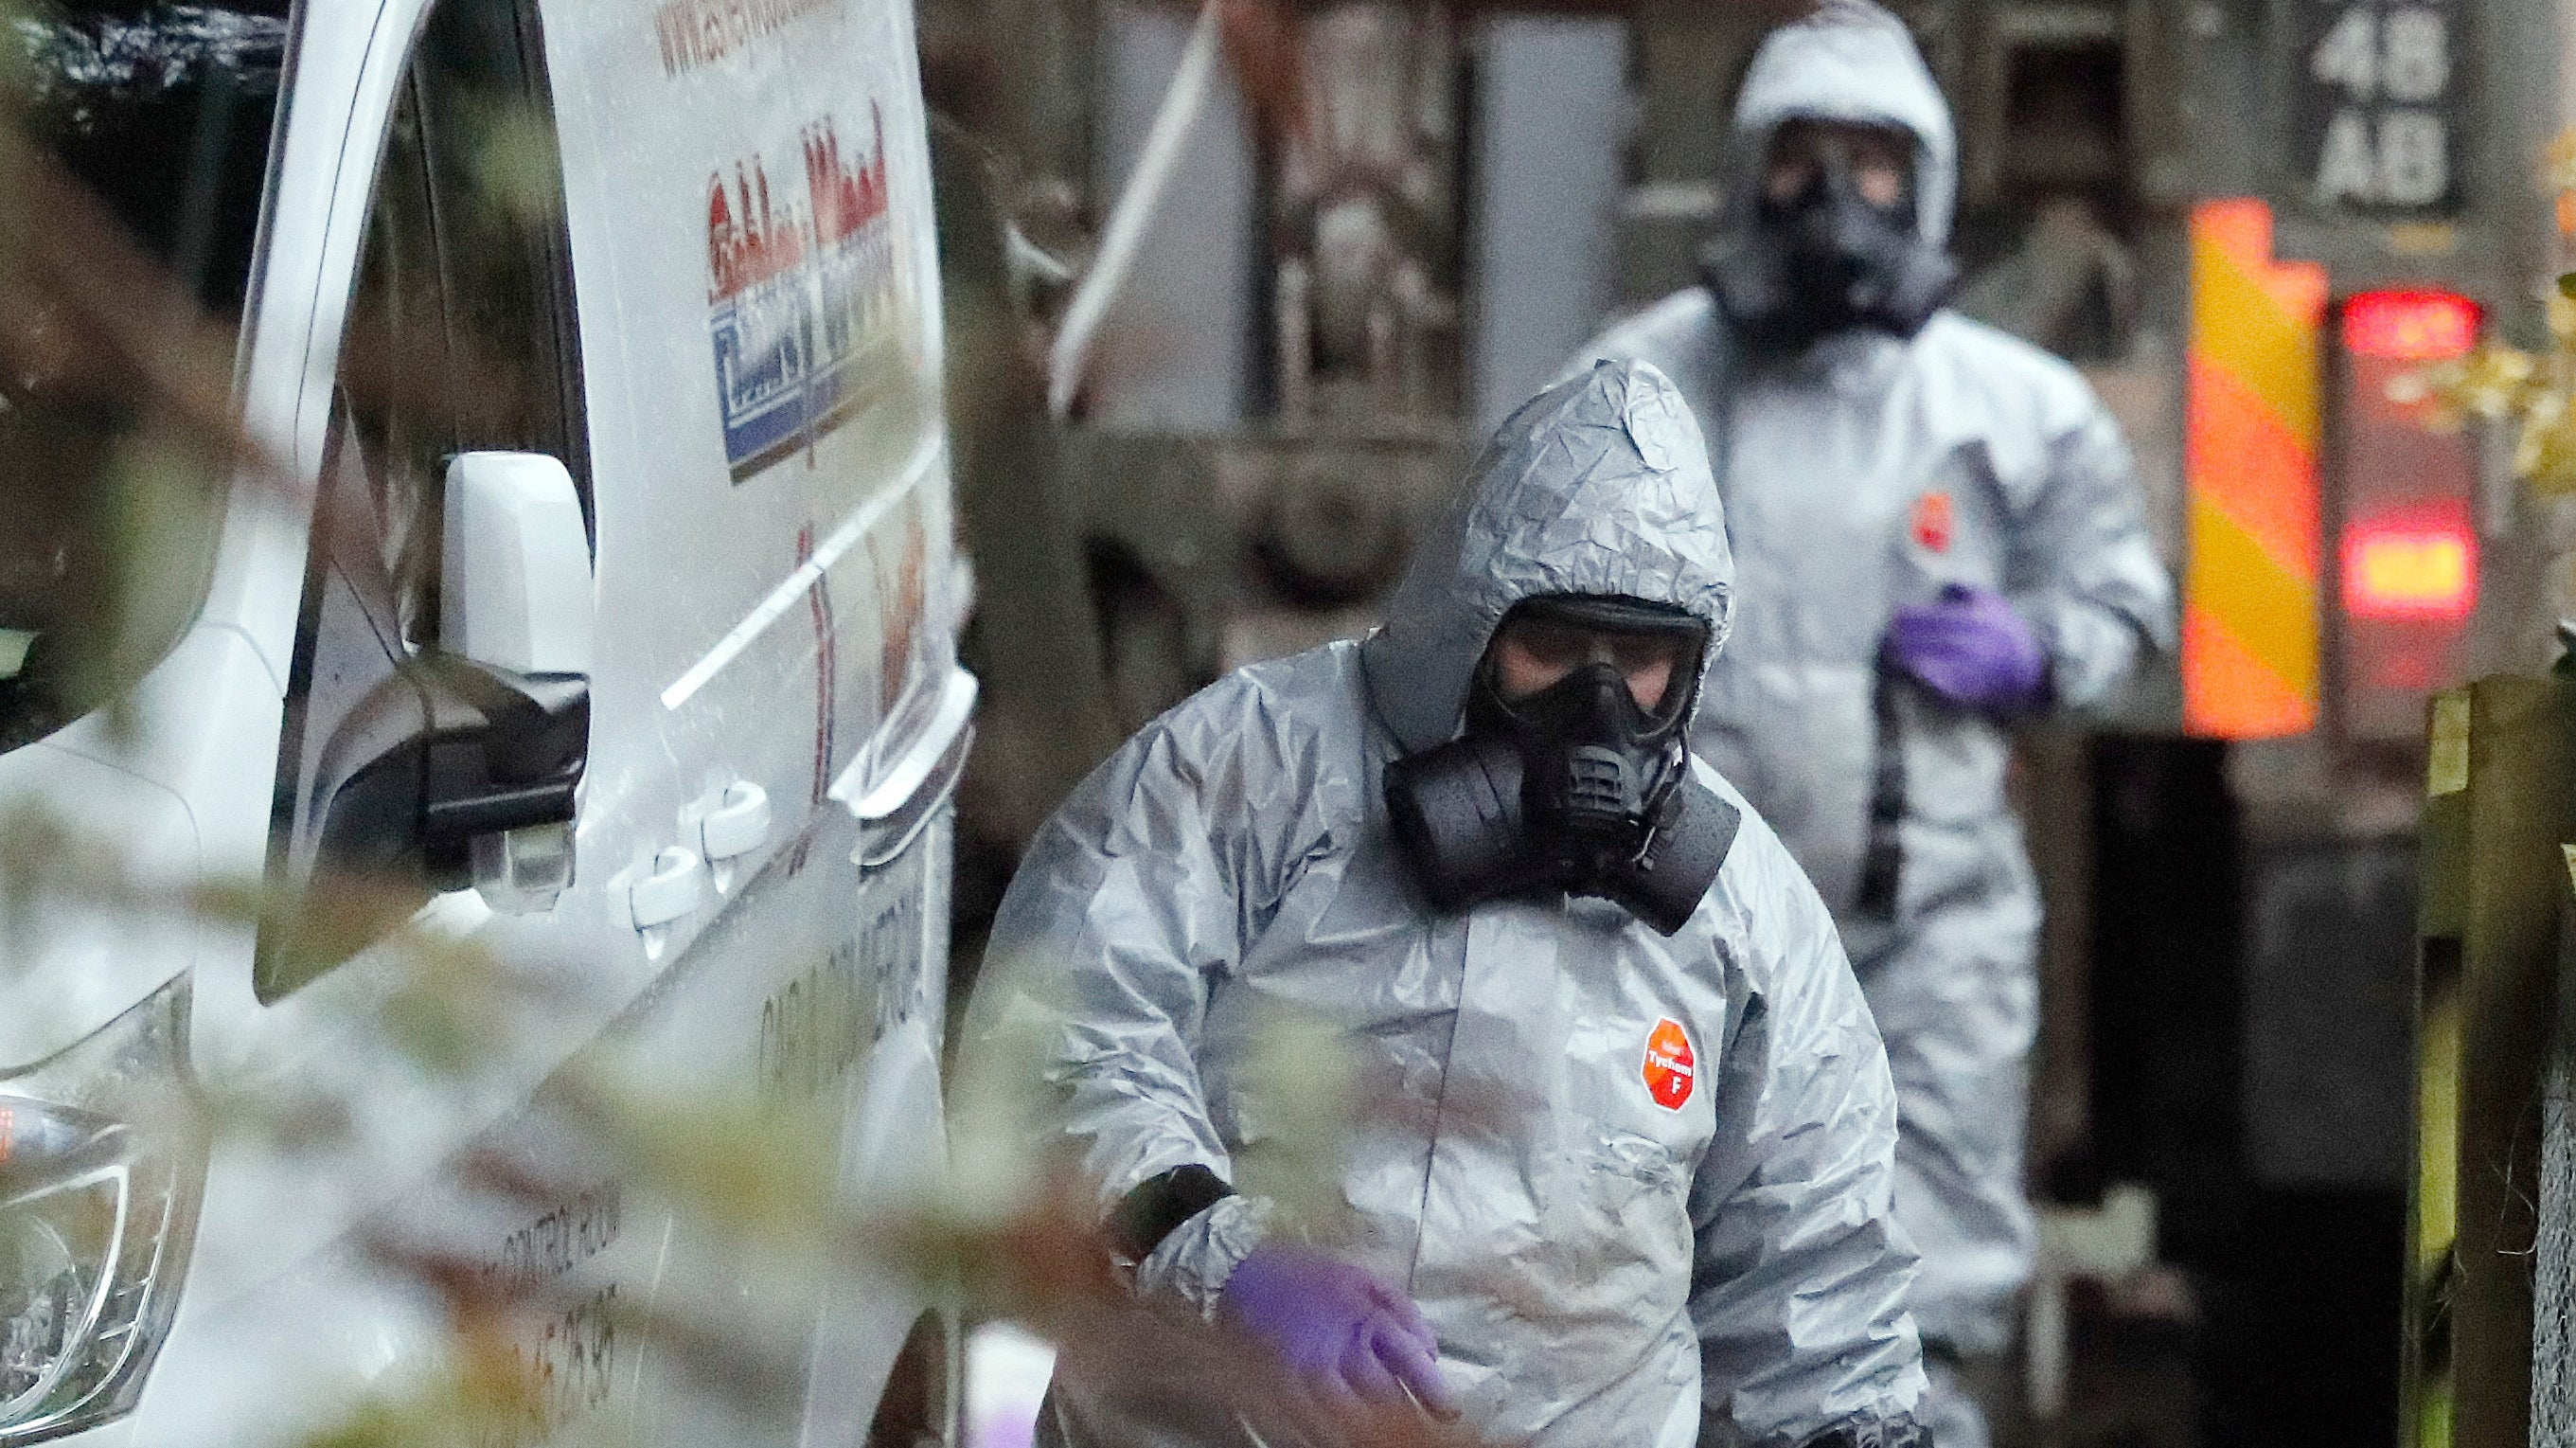 British Counter-Terrorism Officials Are Investigating Two More Novichok Poisonings